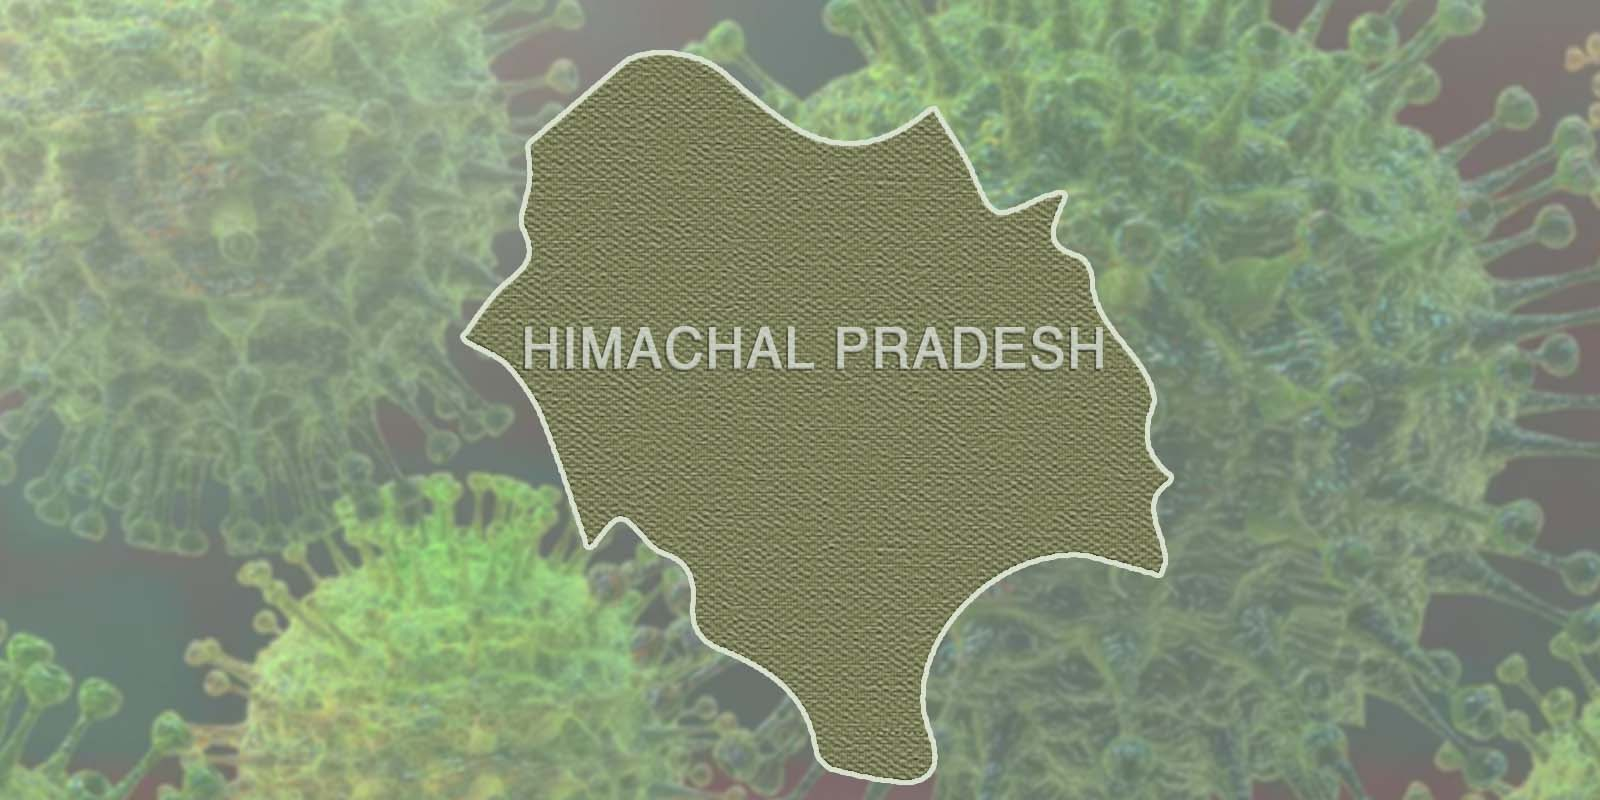 Himachal pradesh lockdown